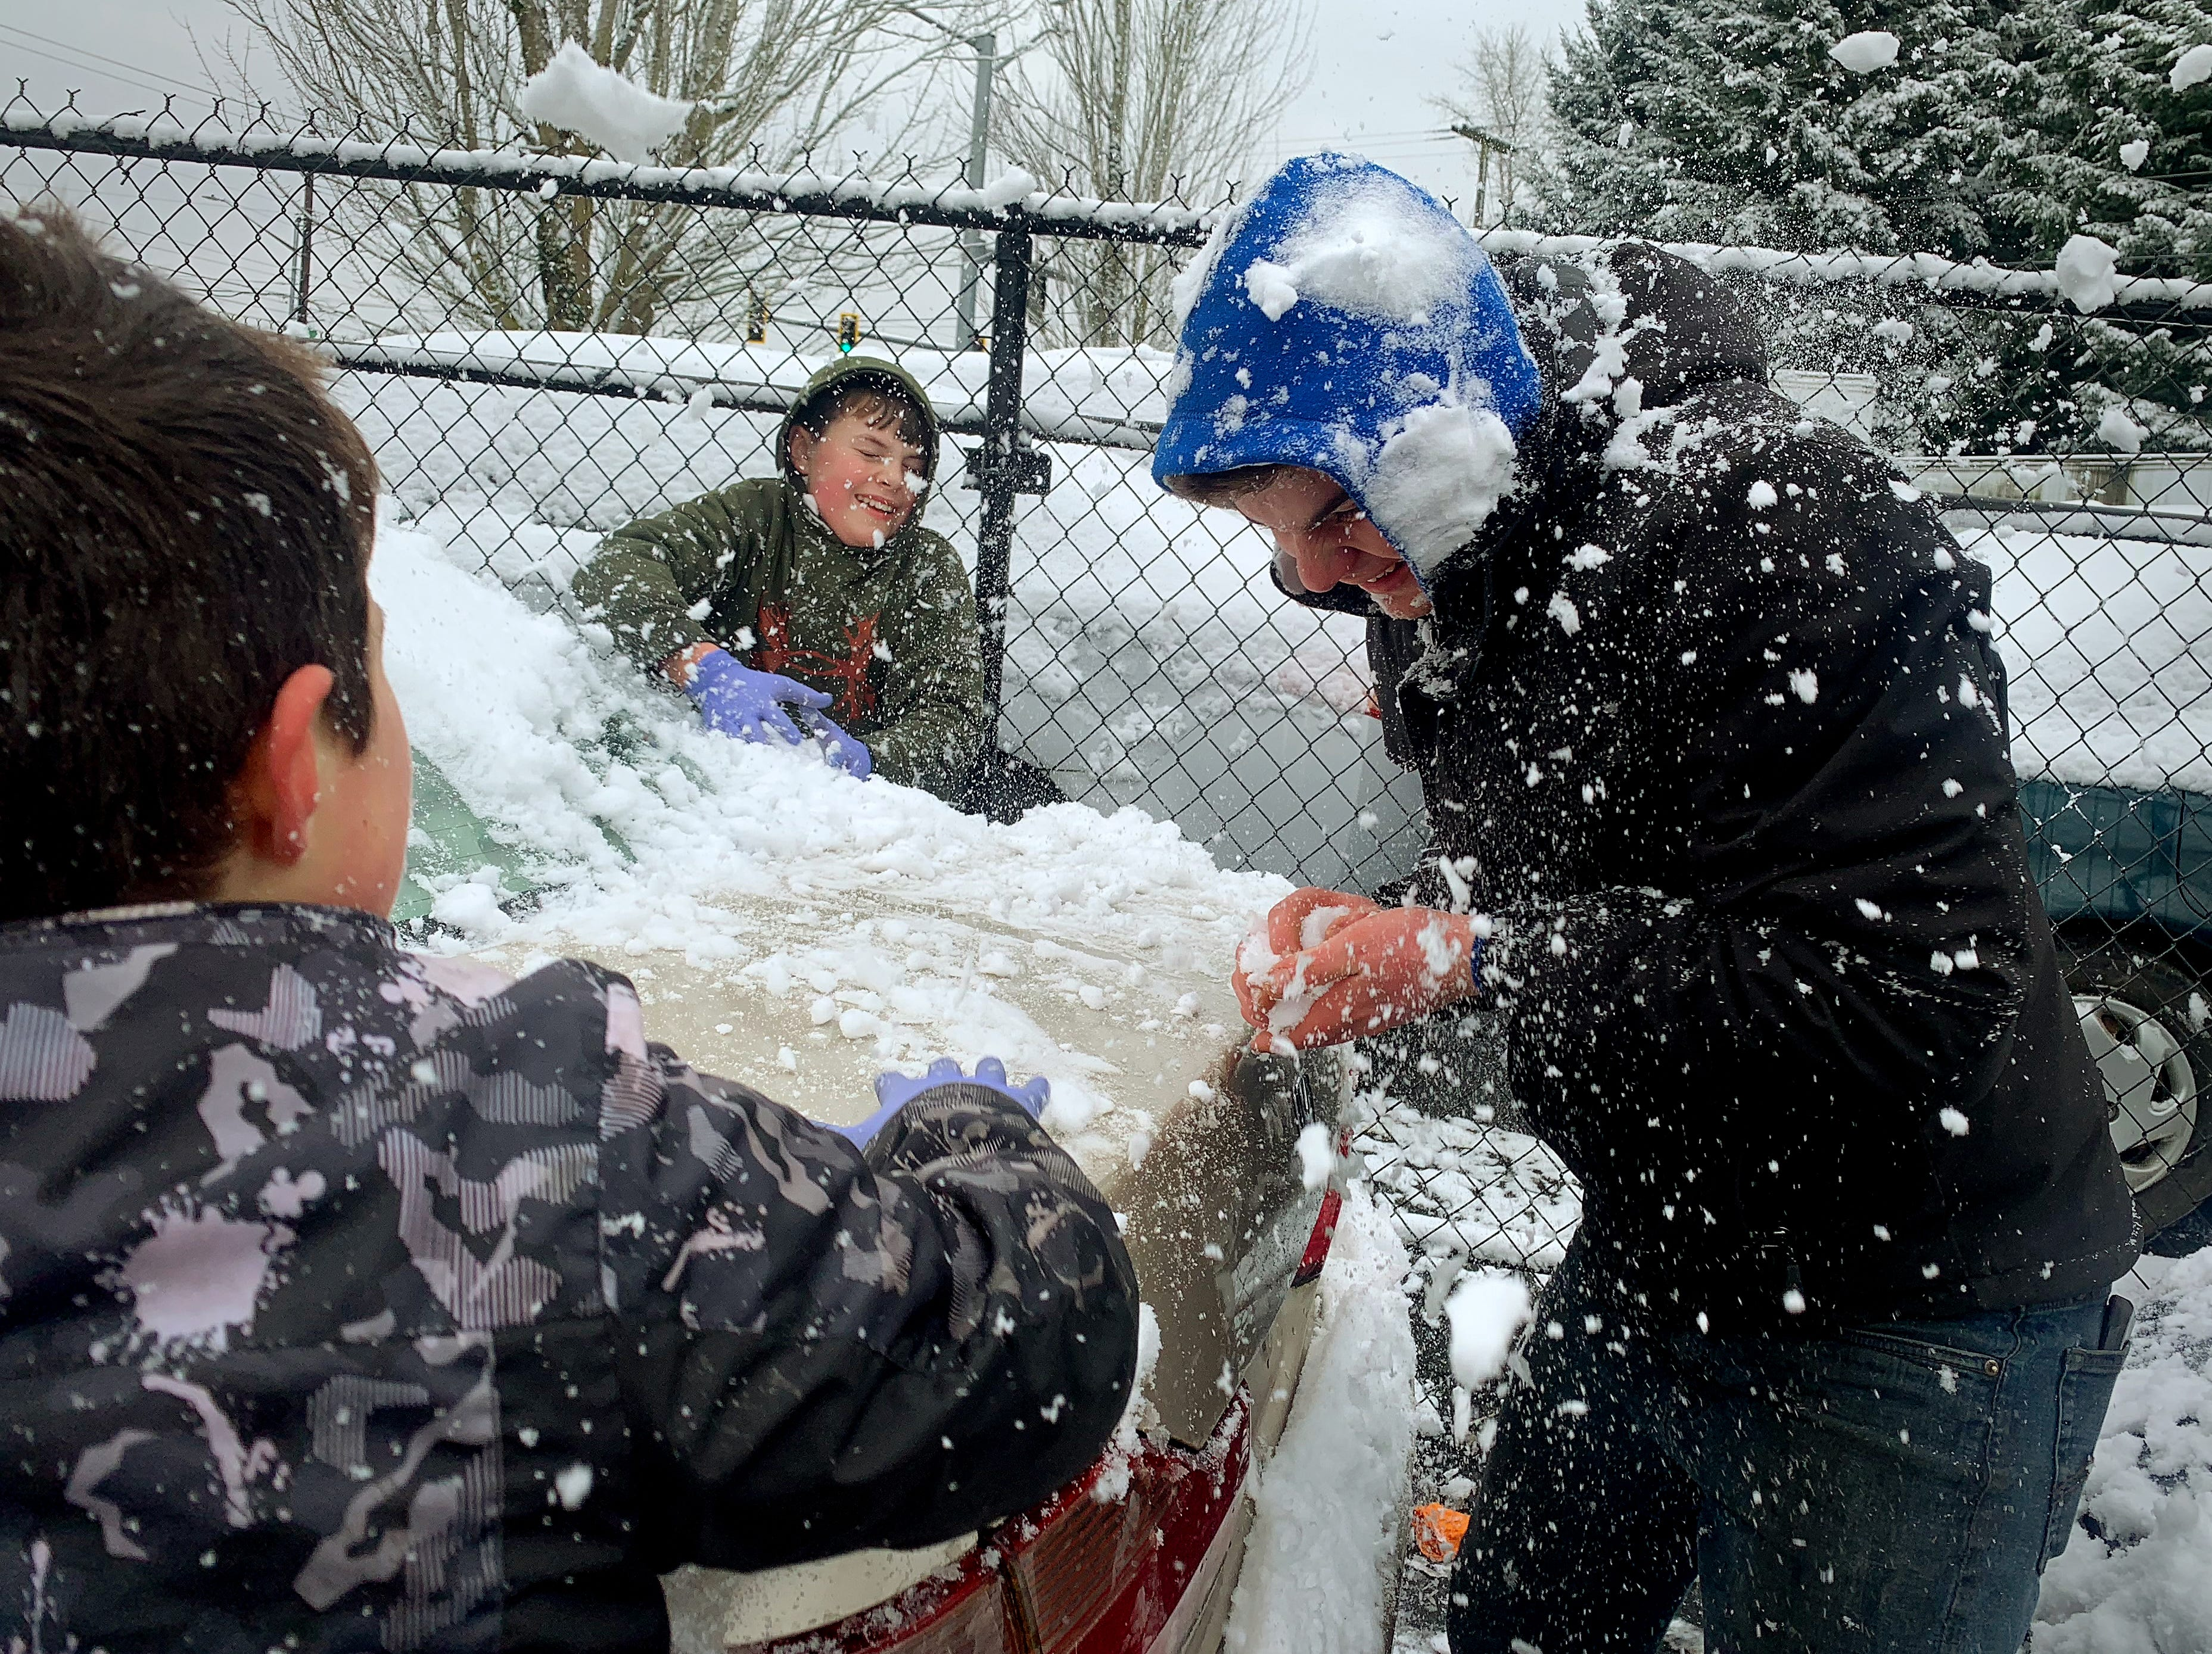 John Arabadji, 17, right, ducks to avoid snowballs from his brothers Sam, 8, left and Tim, 10, middle as they enjoy their day off from school with a snowball fight outside of the family business Tuesday, February 5, 2019 in Salem.